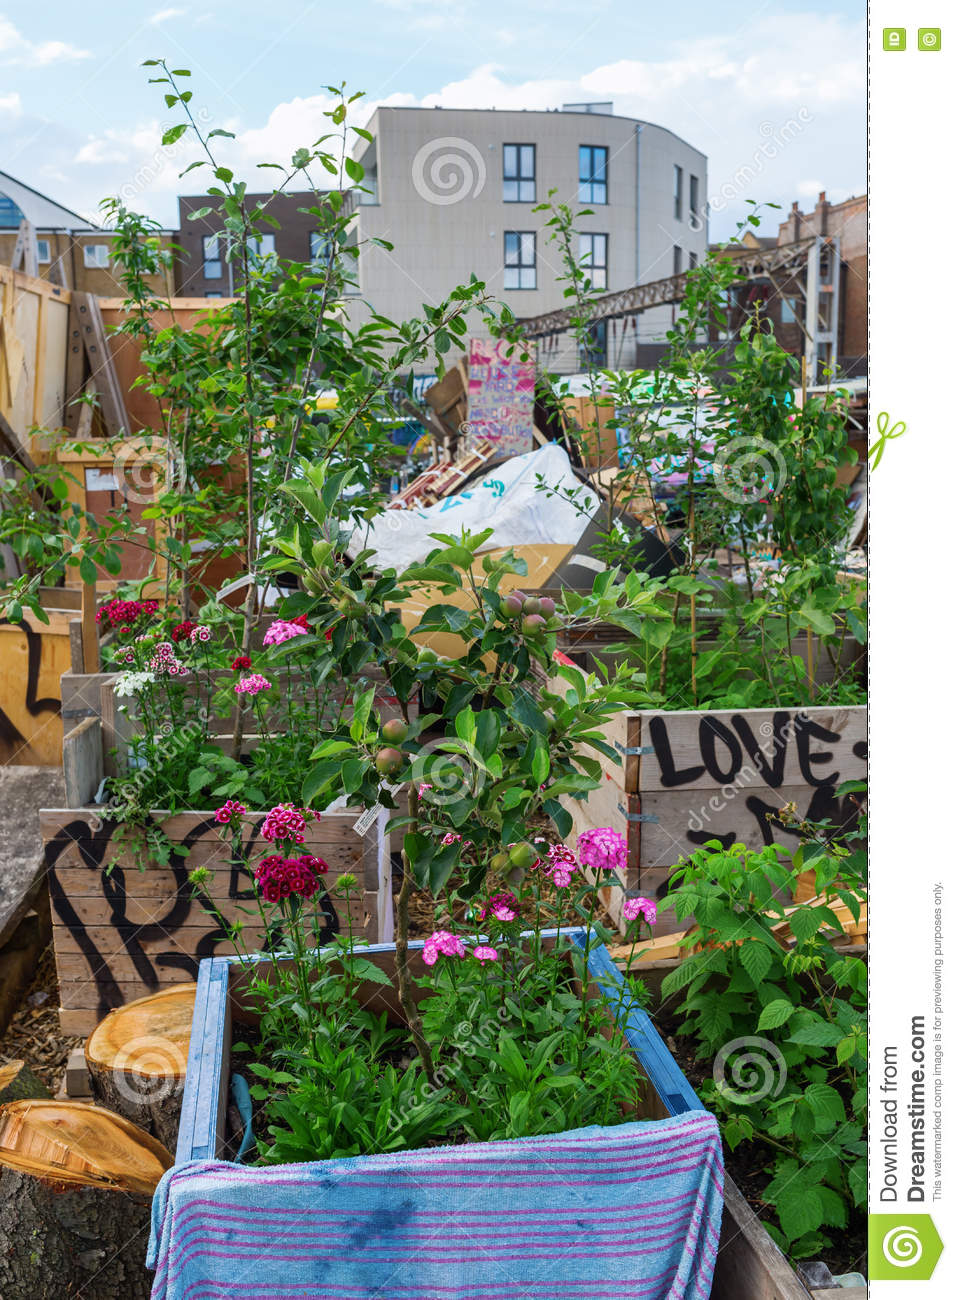 Shoreditch London Uk: Nomadic Community Gardens In Shoreditch, London, UK